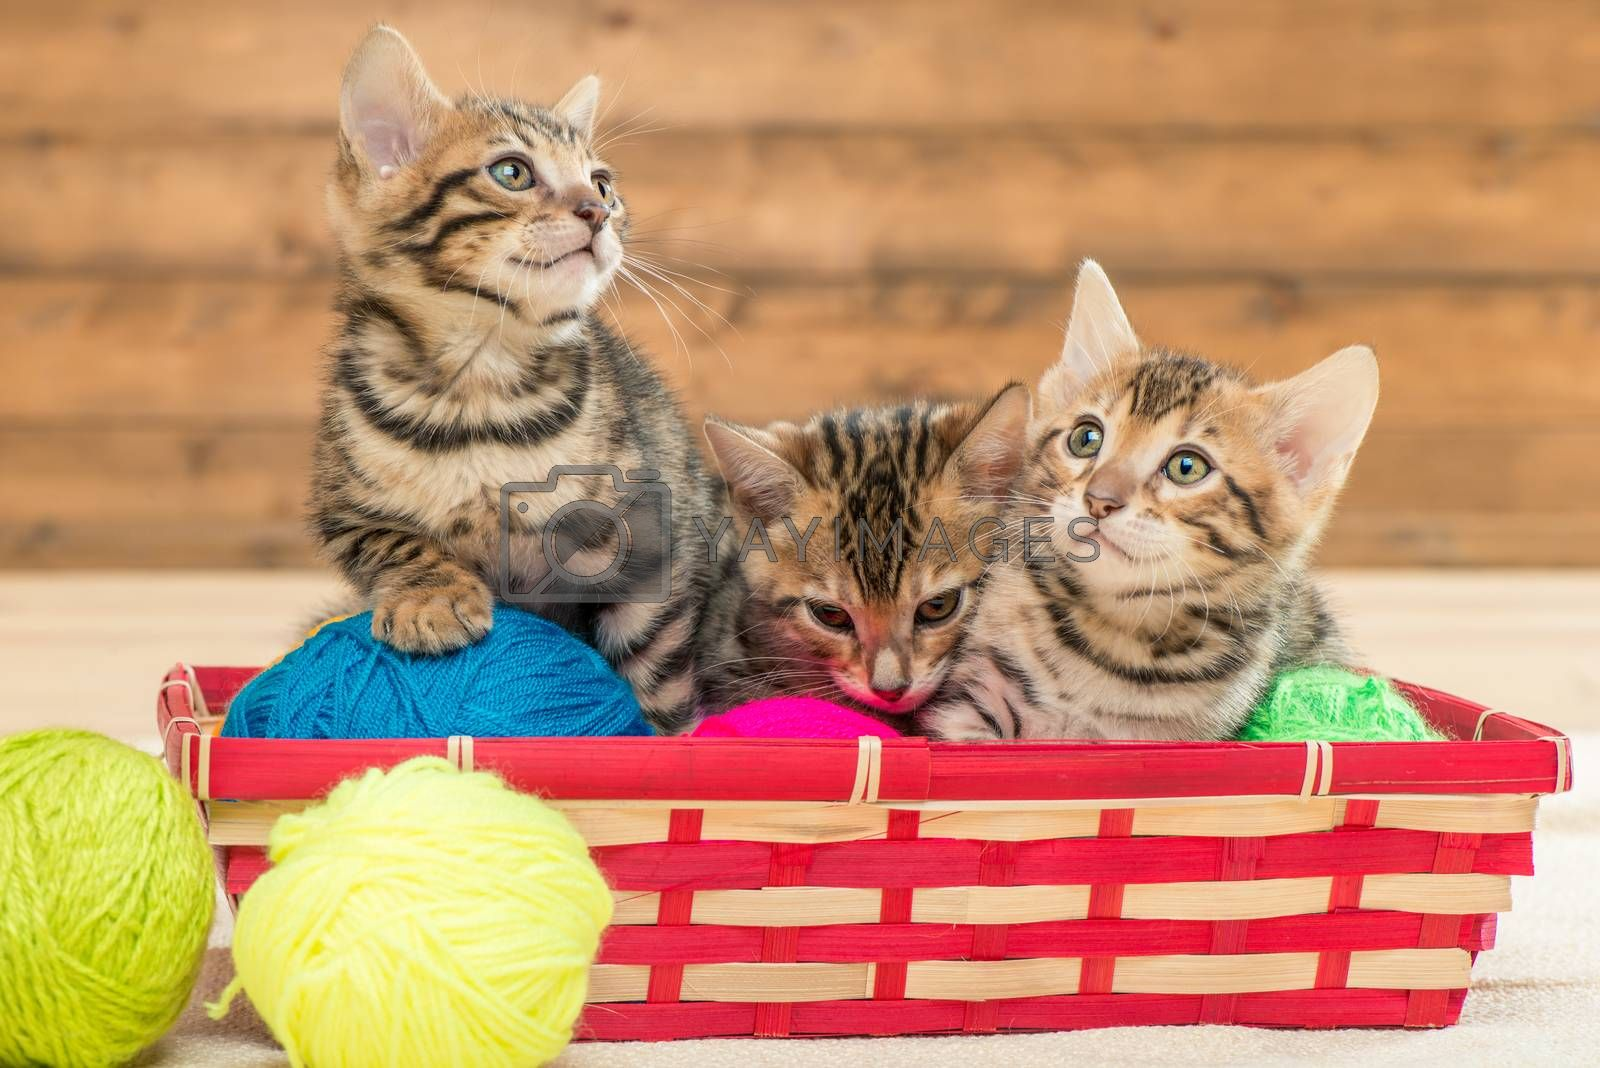 in the wicker basket sit three kittens of the Bengal breed playi by Labunskiy K.